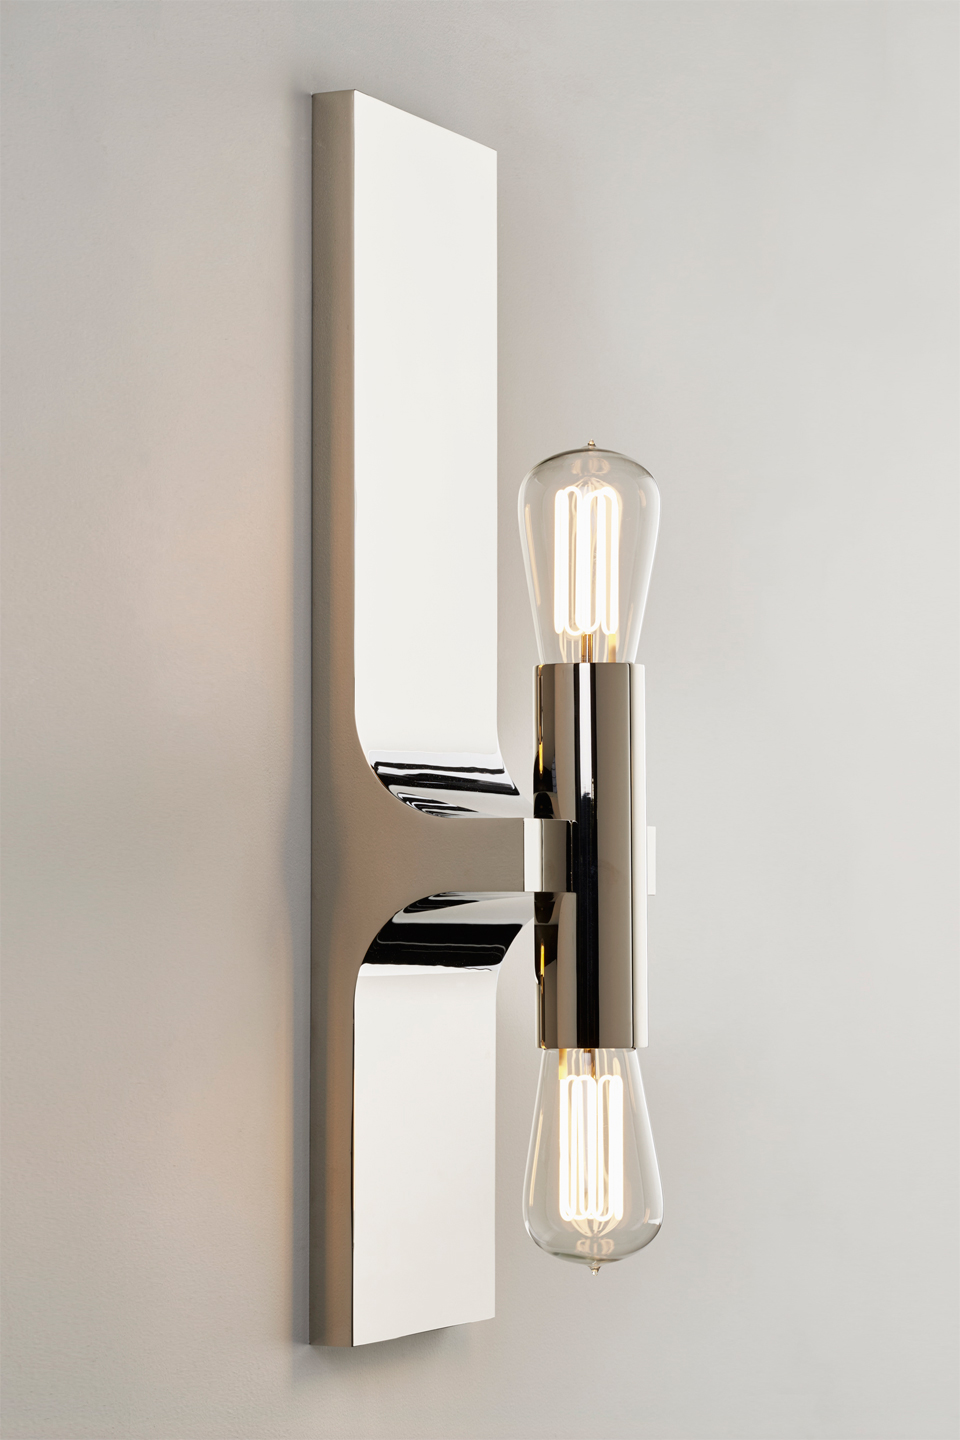 Walcott applique double en chrome poli. Nautic by Tekna.